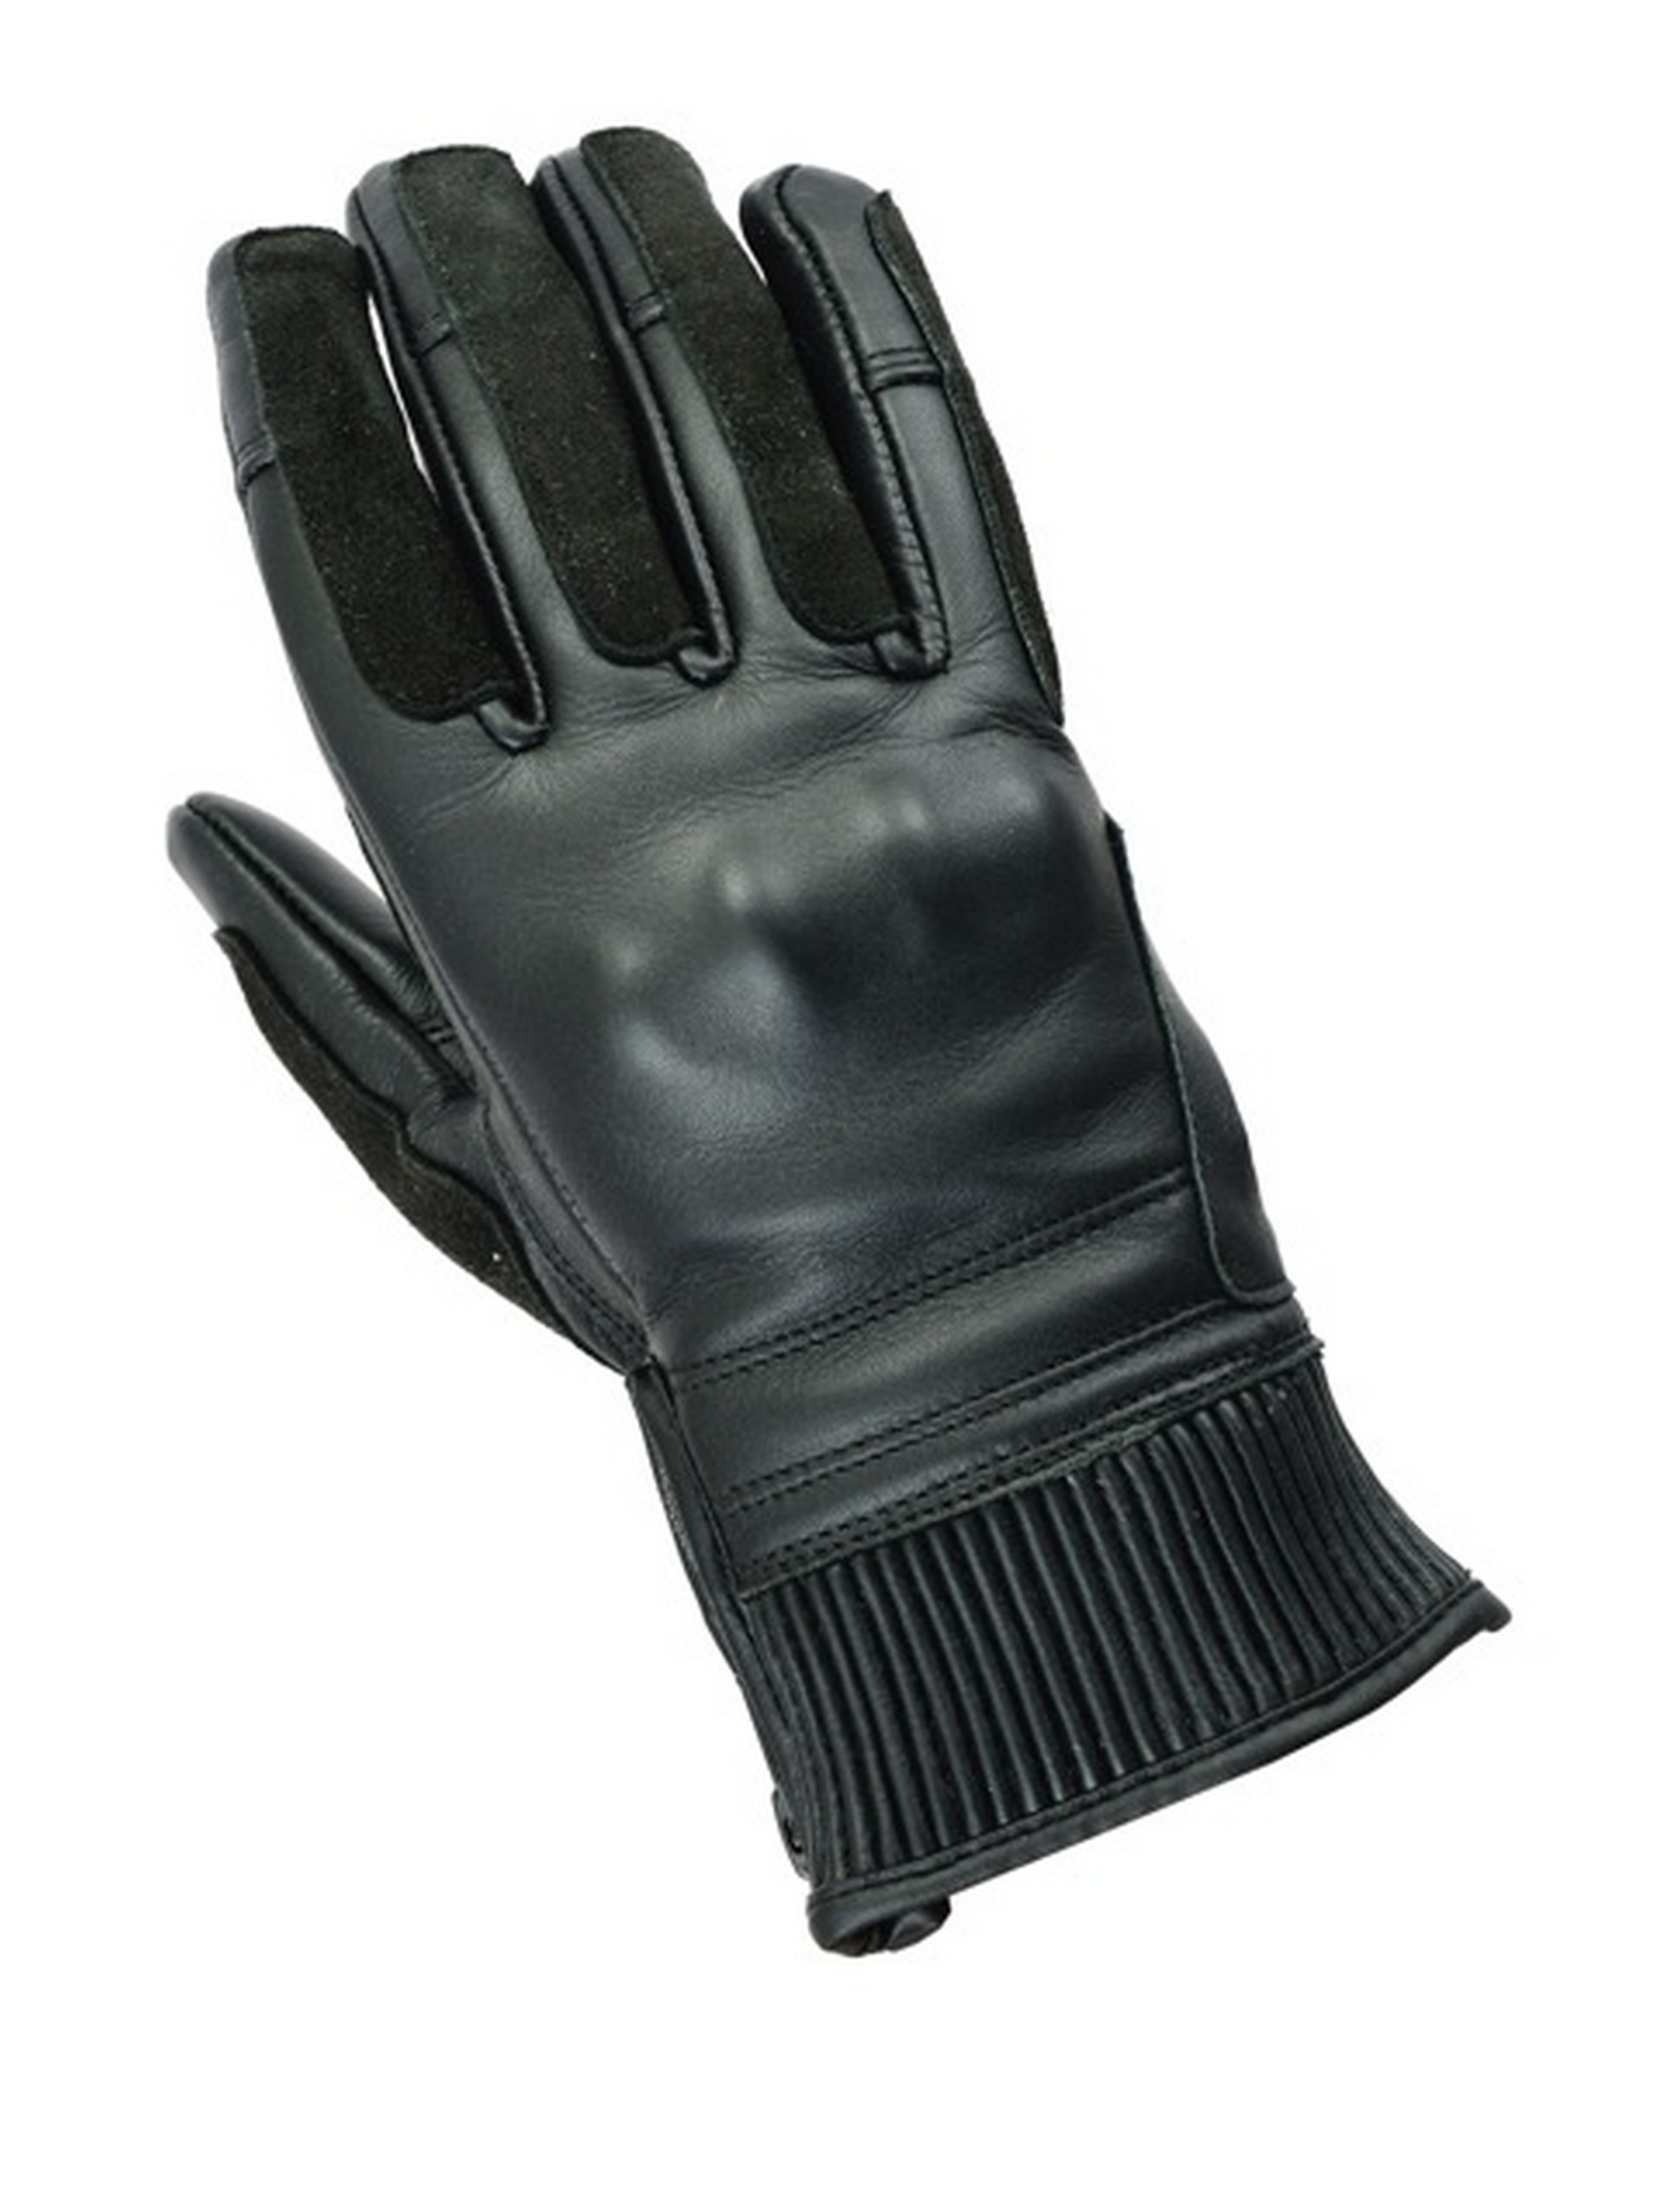 Womens Black Short Cuff Leather Cruiser Motorcycle//Motorbike Gloves XS to XL